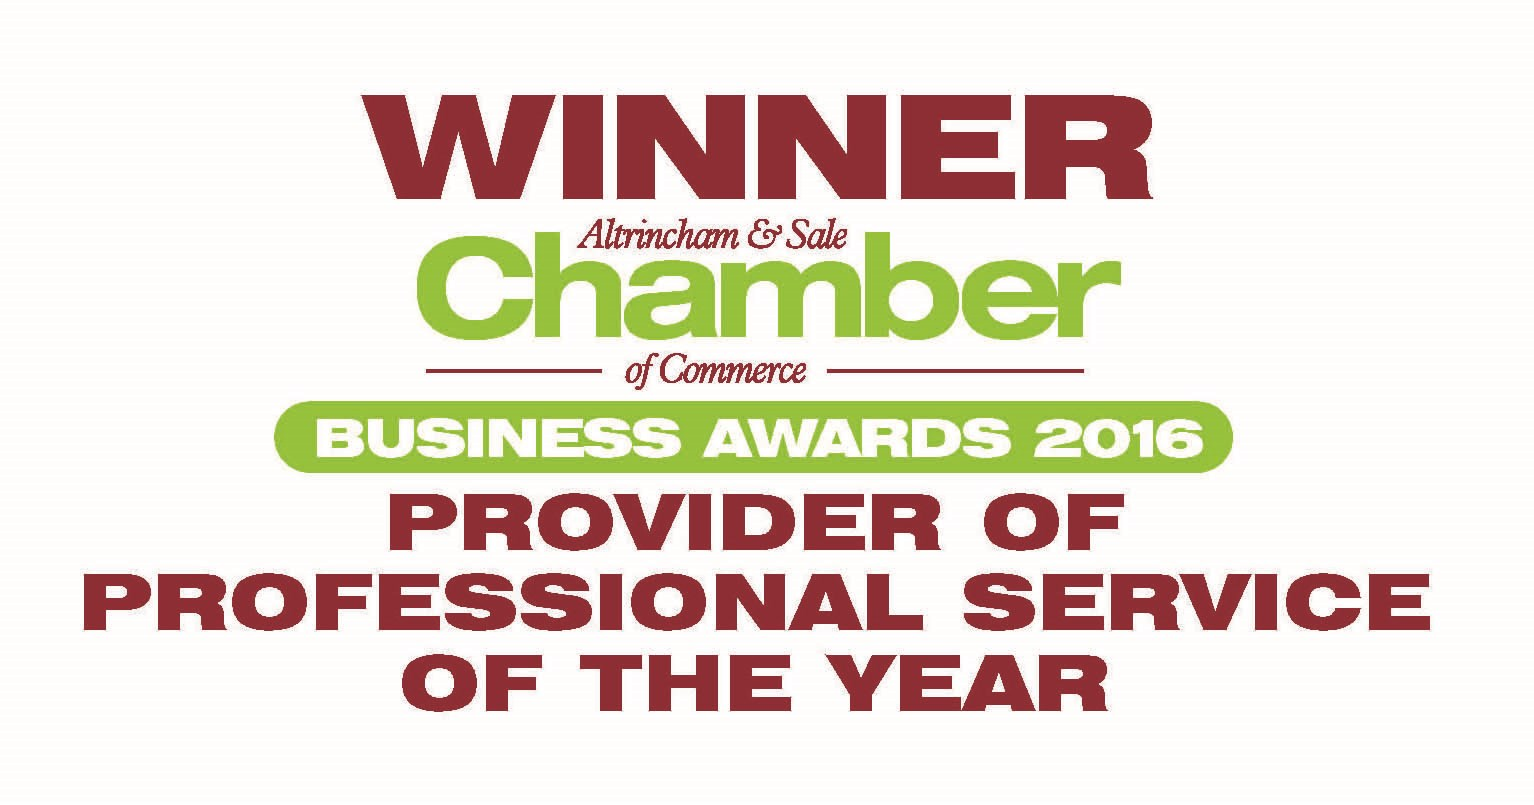 Provider of Professional Service of the Year WINNER